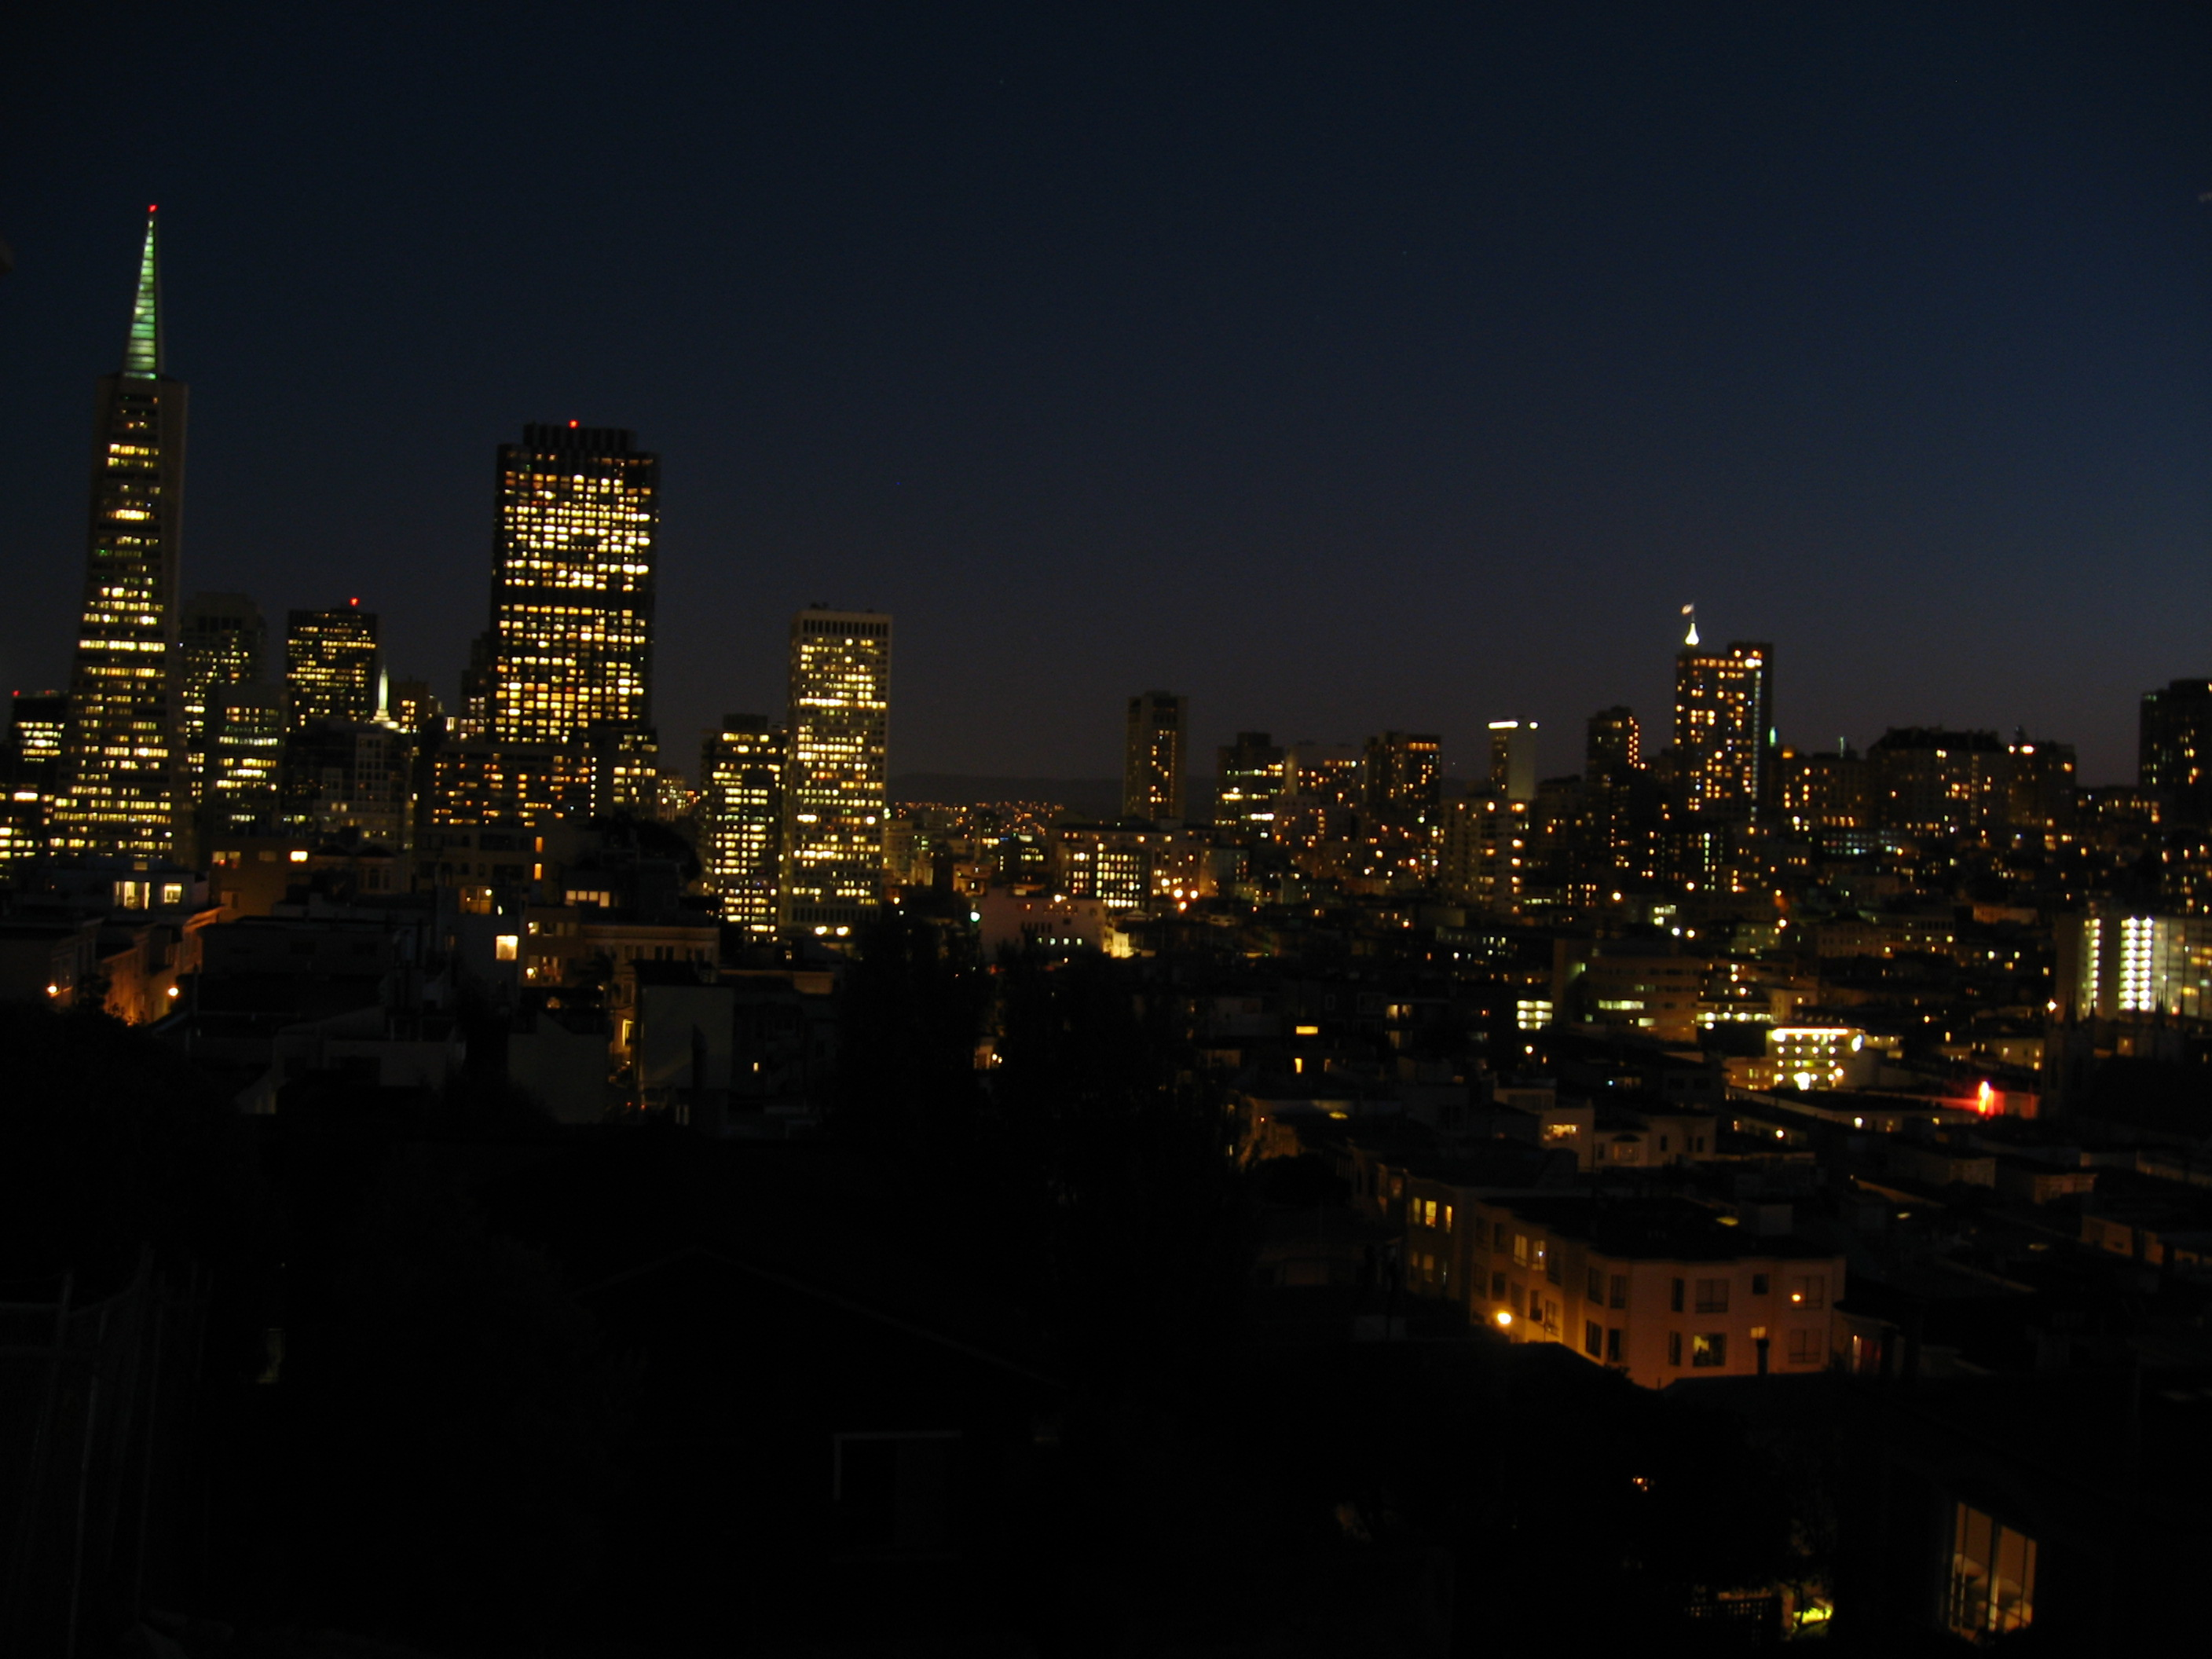 Gallery - /San Francisco/Night city